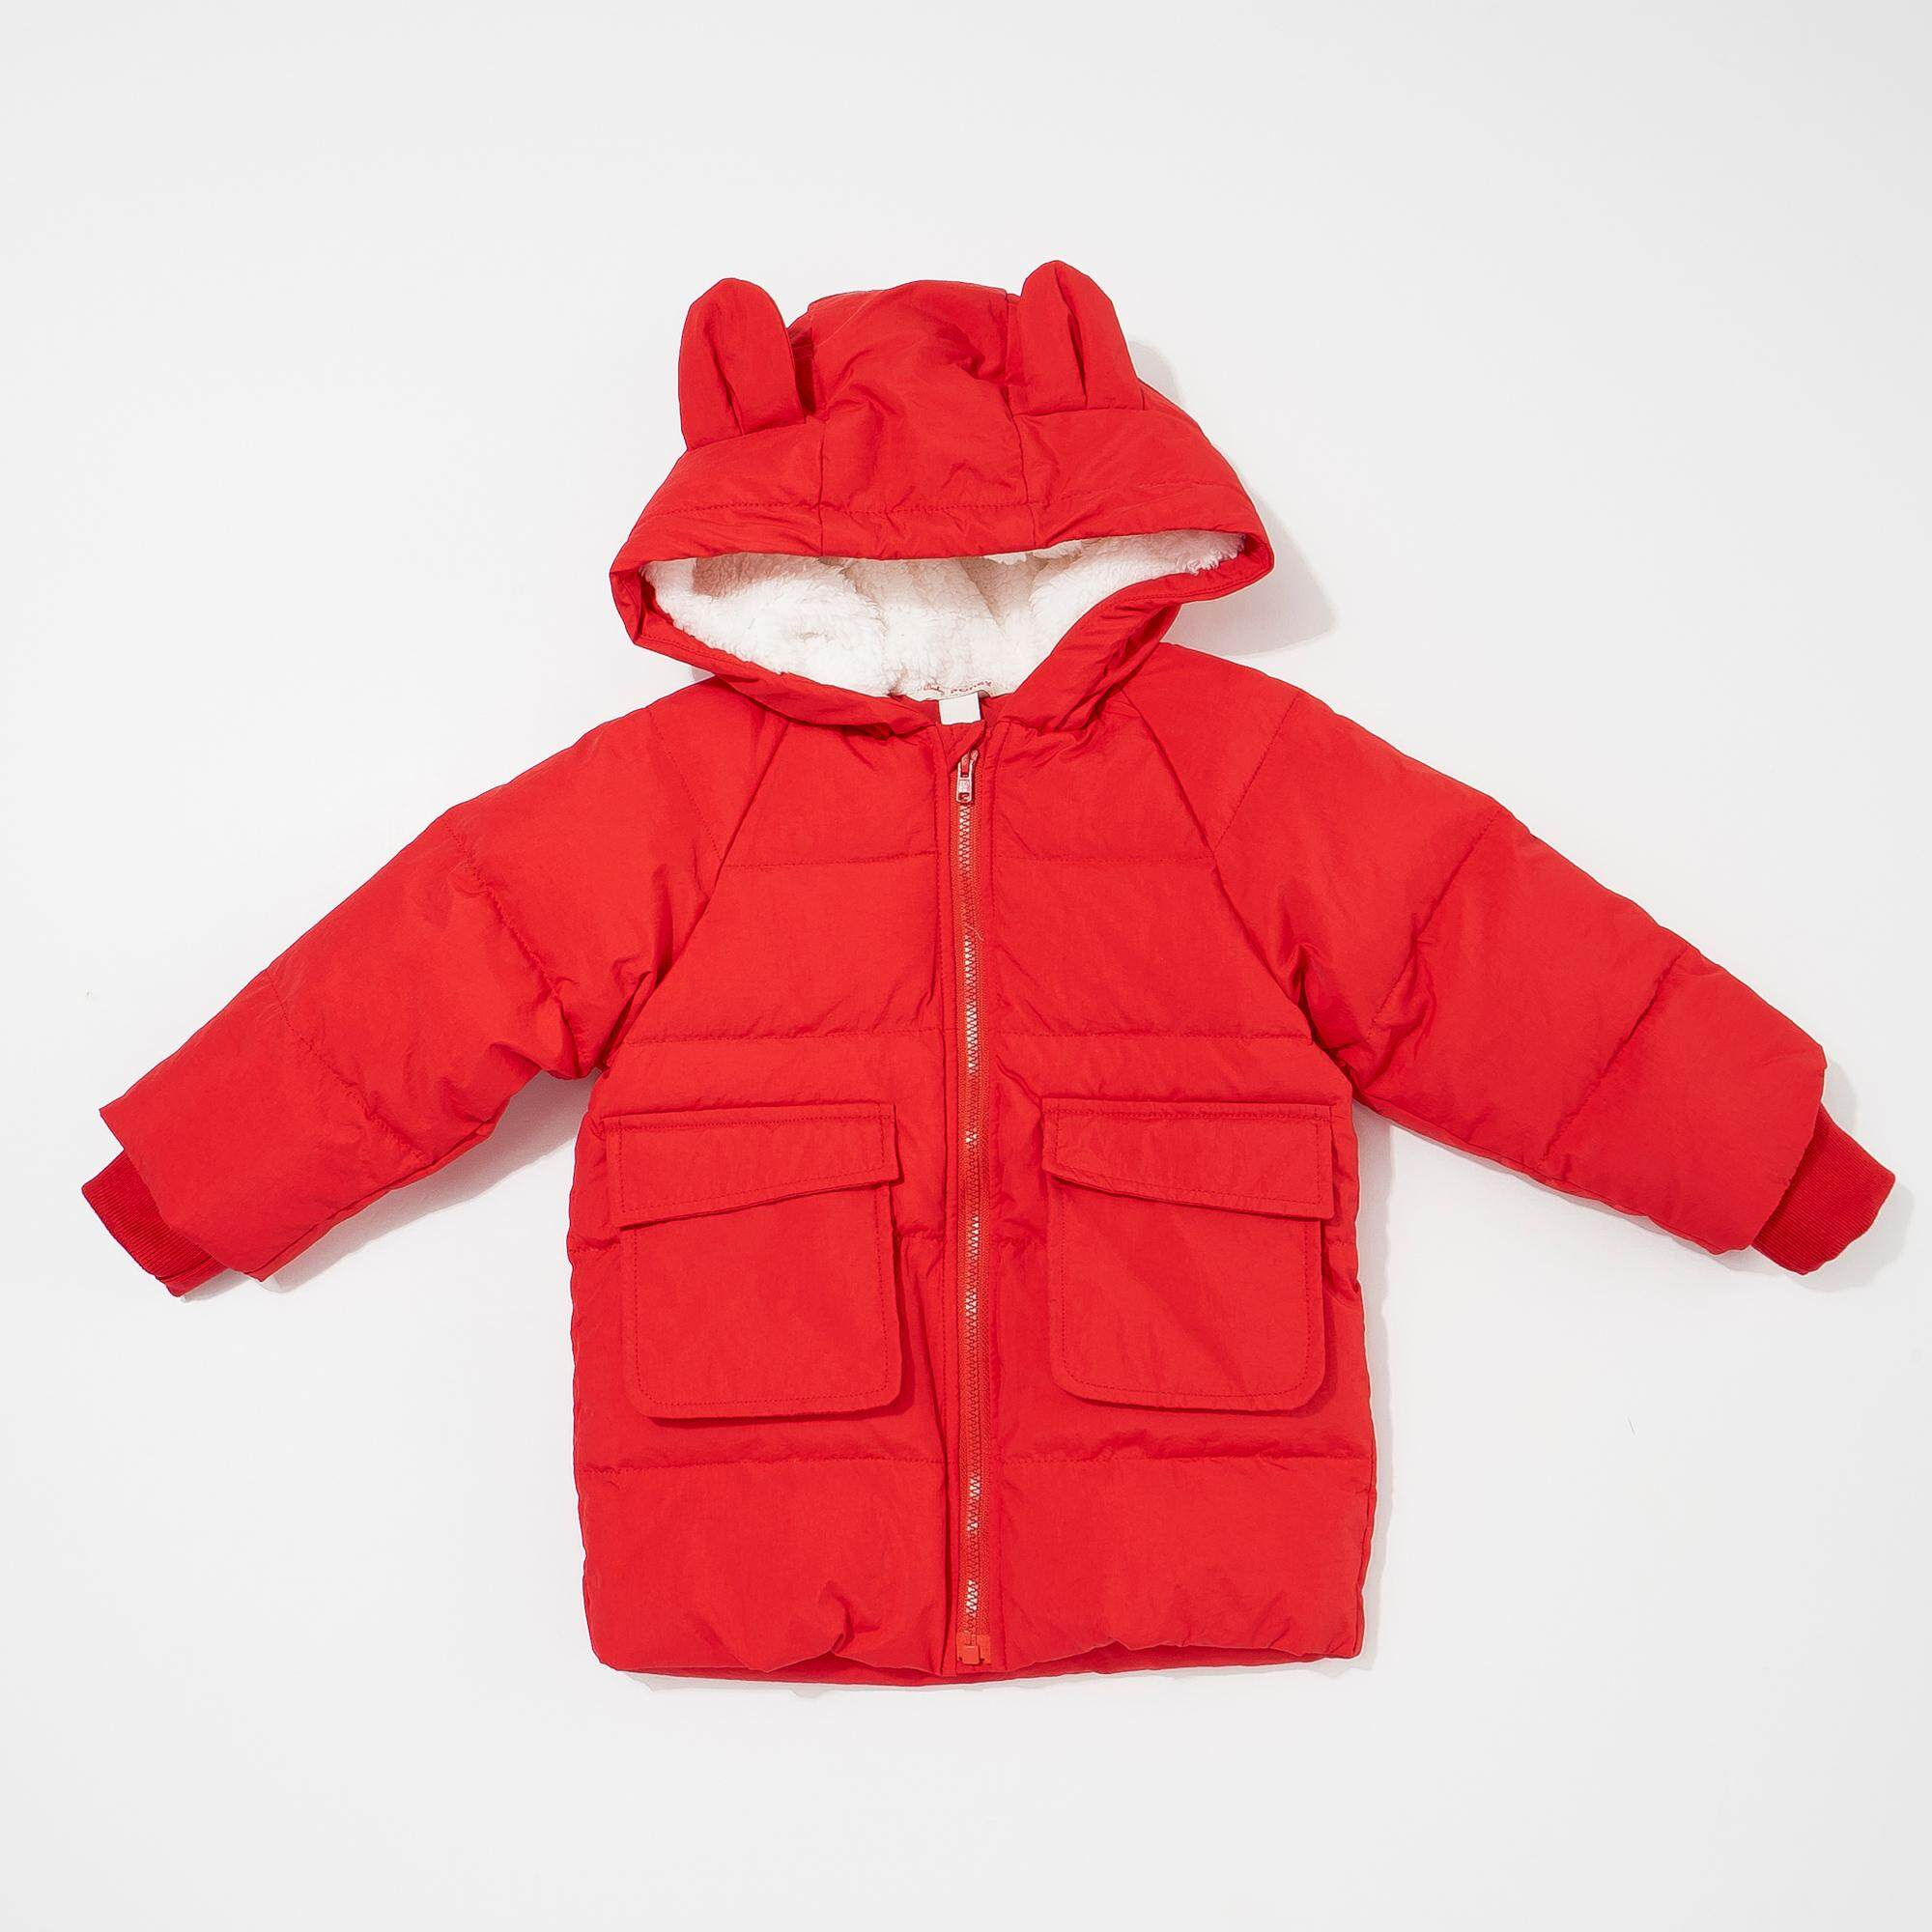 Poney Caila Puffer Jacket (red) By Poney.